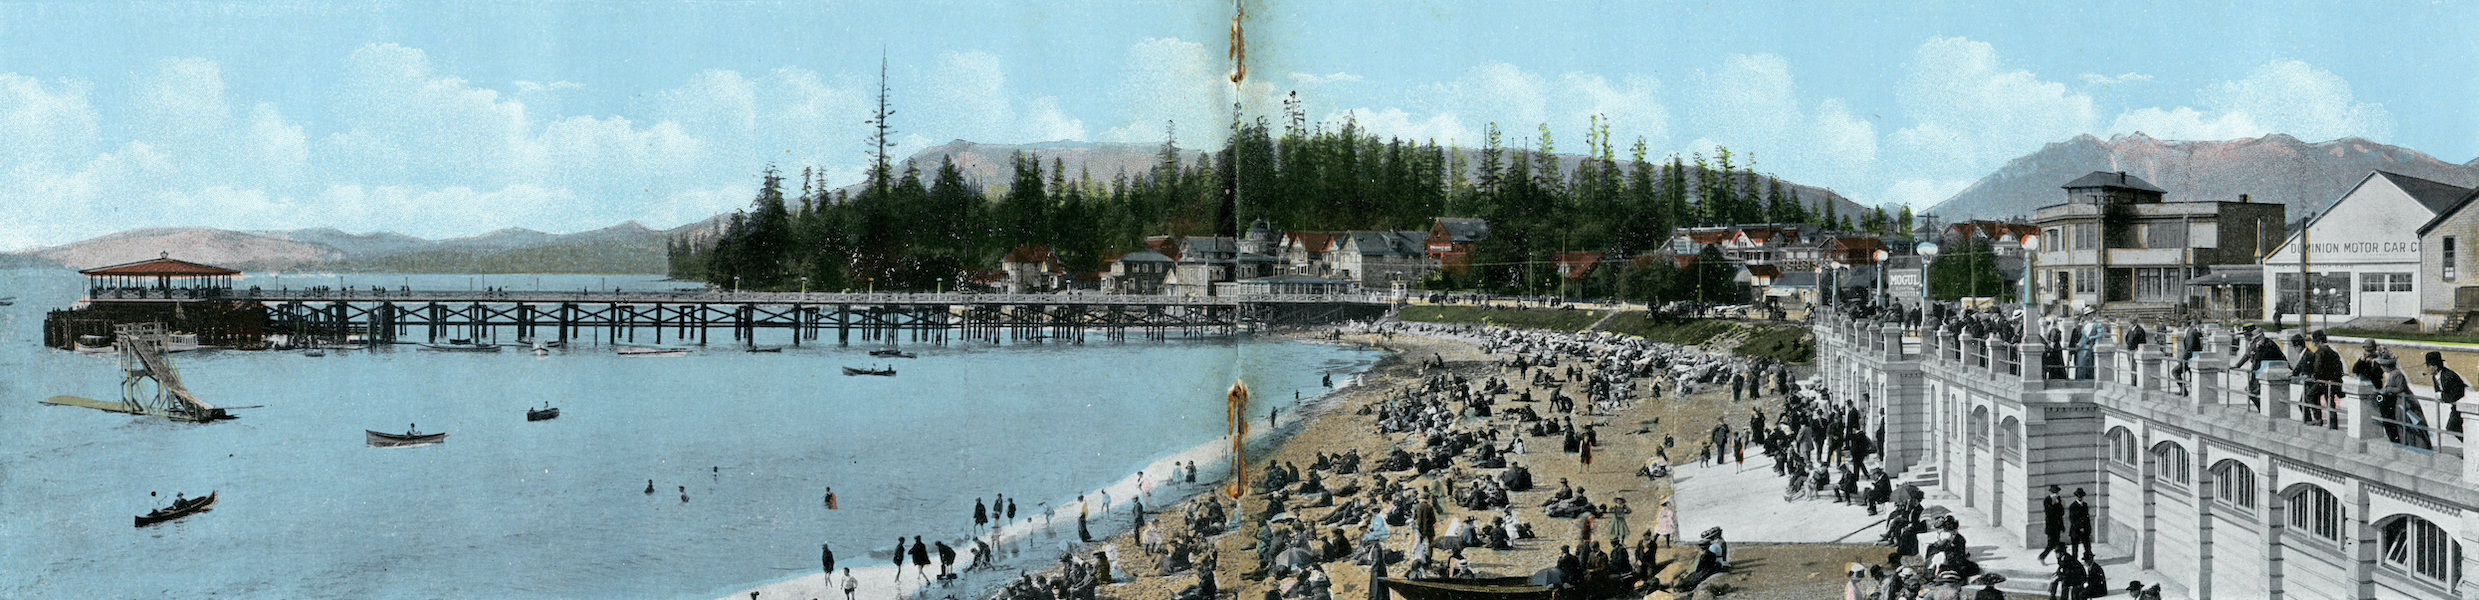 Picturesque Vancouver B.C. - English Bay (1911)